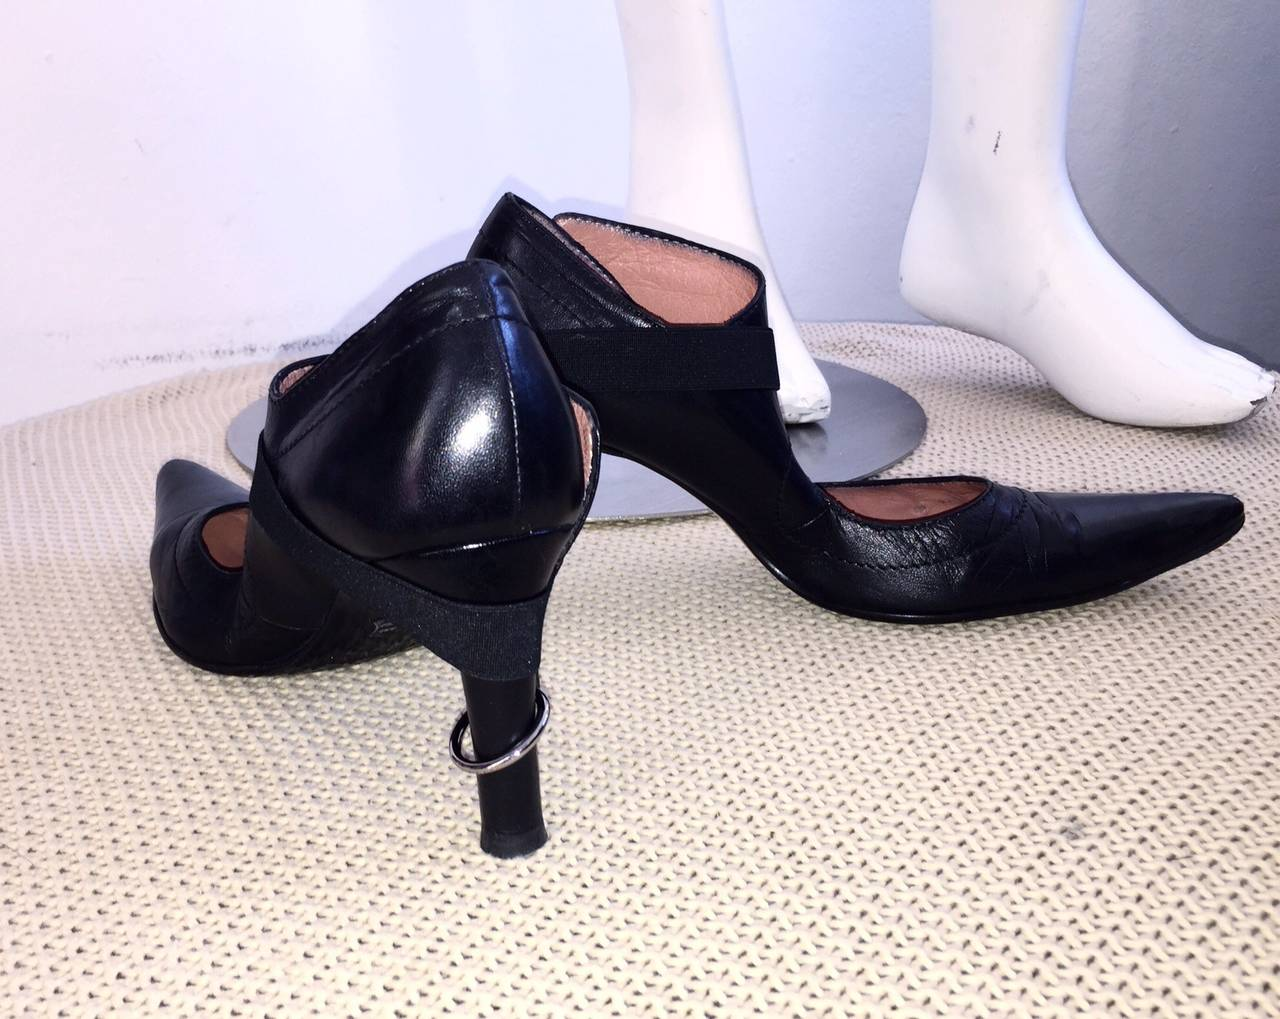 Rare Dirk Bikkembergs Black Leather Runway ' Bondage ' Loop Heels Size 38 8 In Excellent Condition For Sale In Chicago, IL